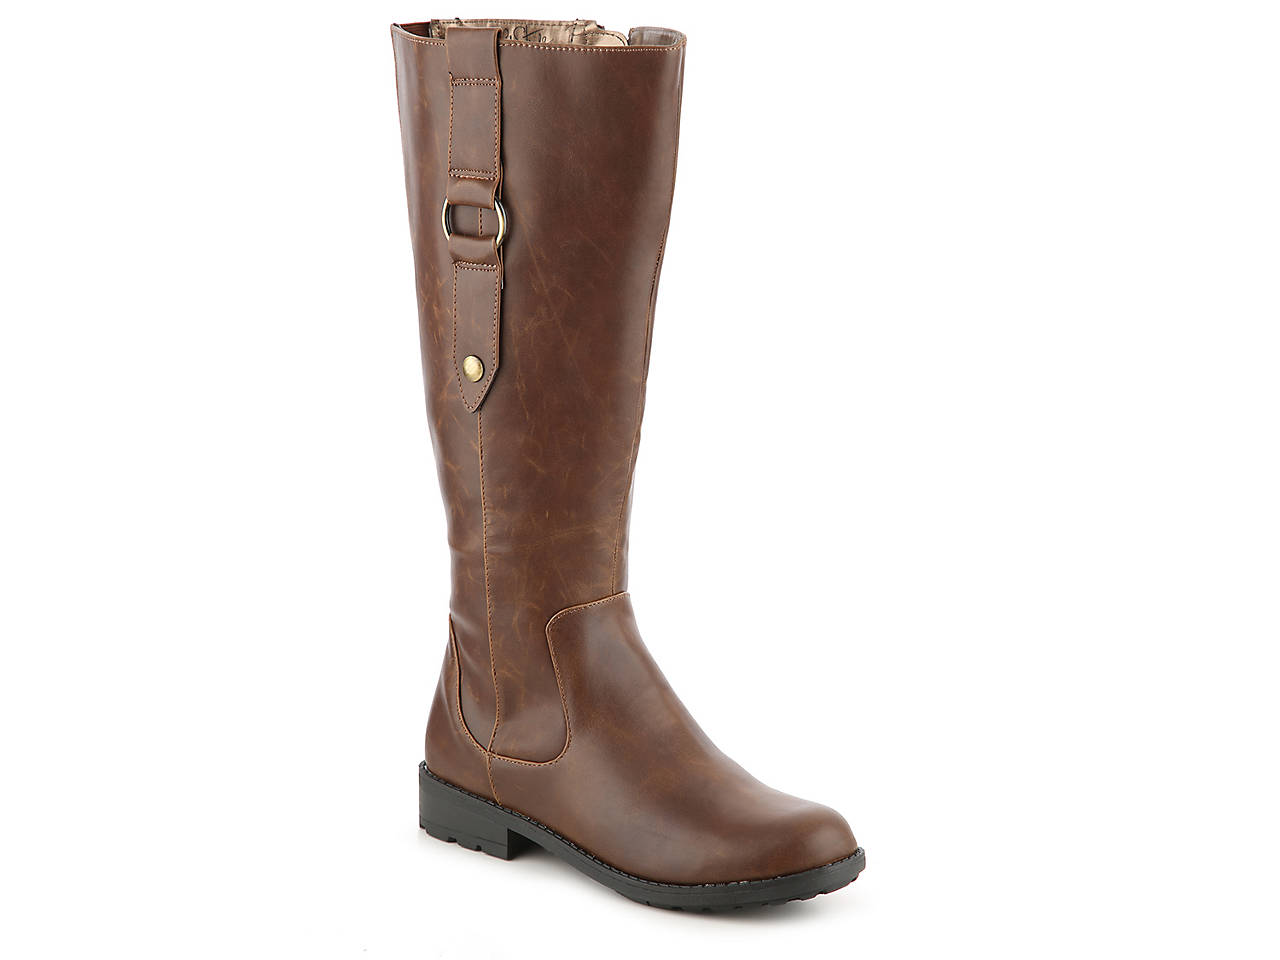 LifeStride Unity Wide Calf Boot